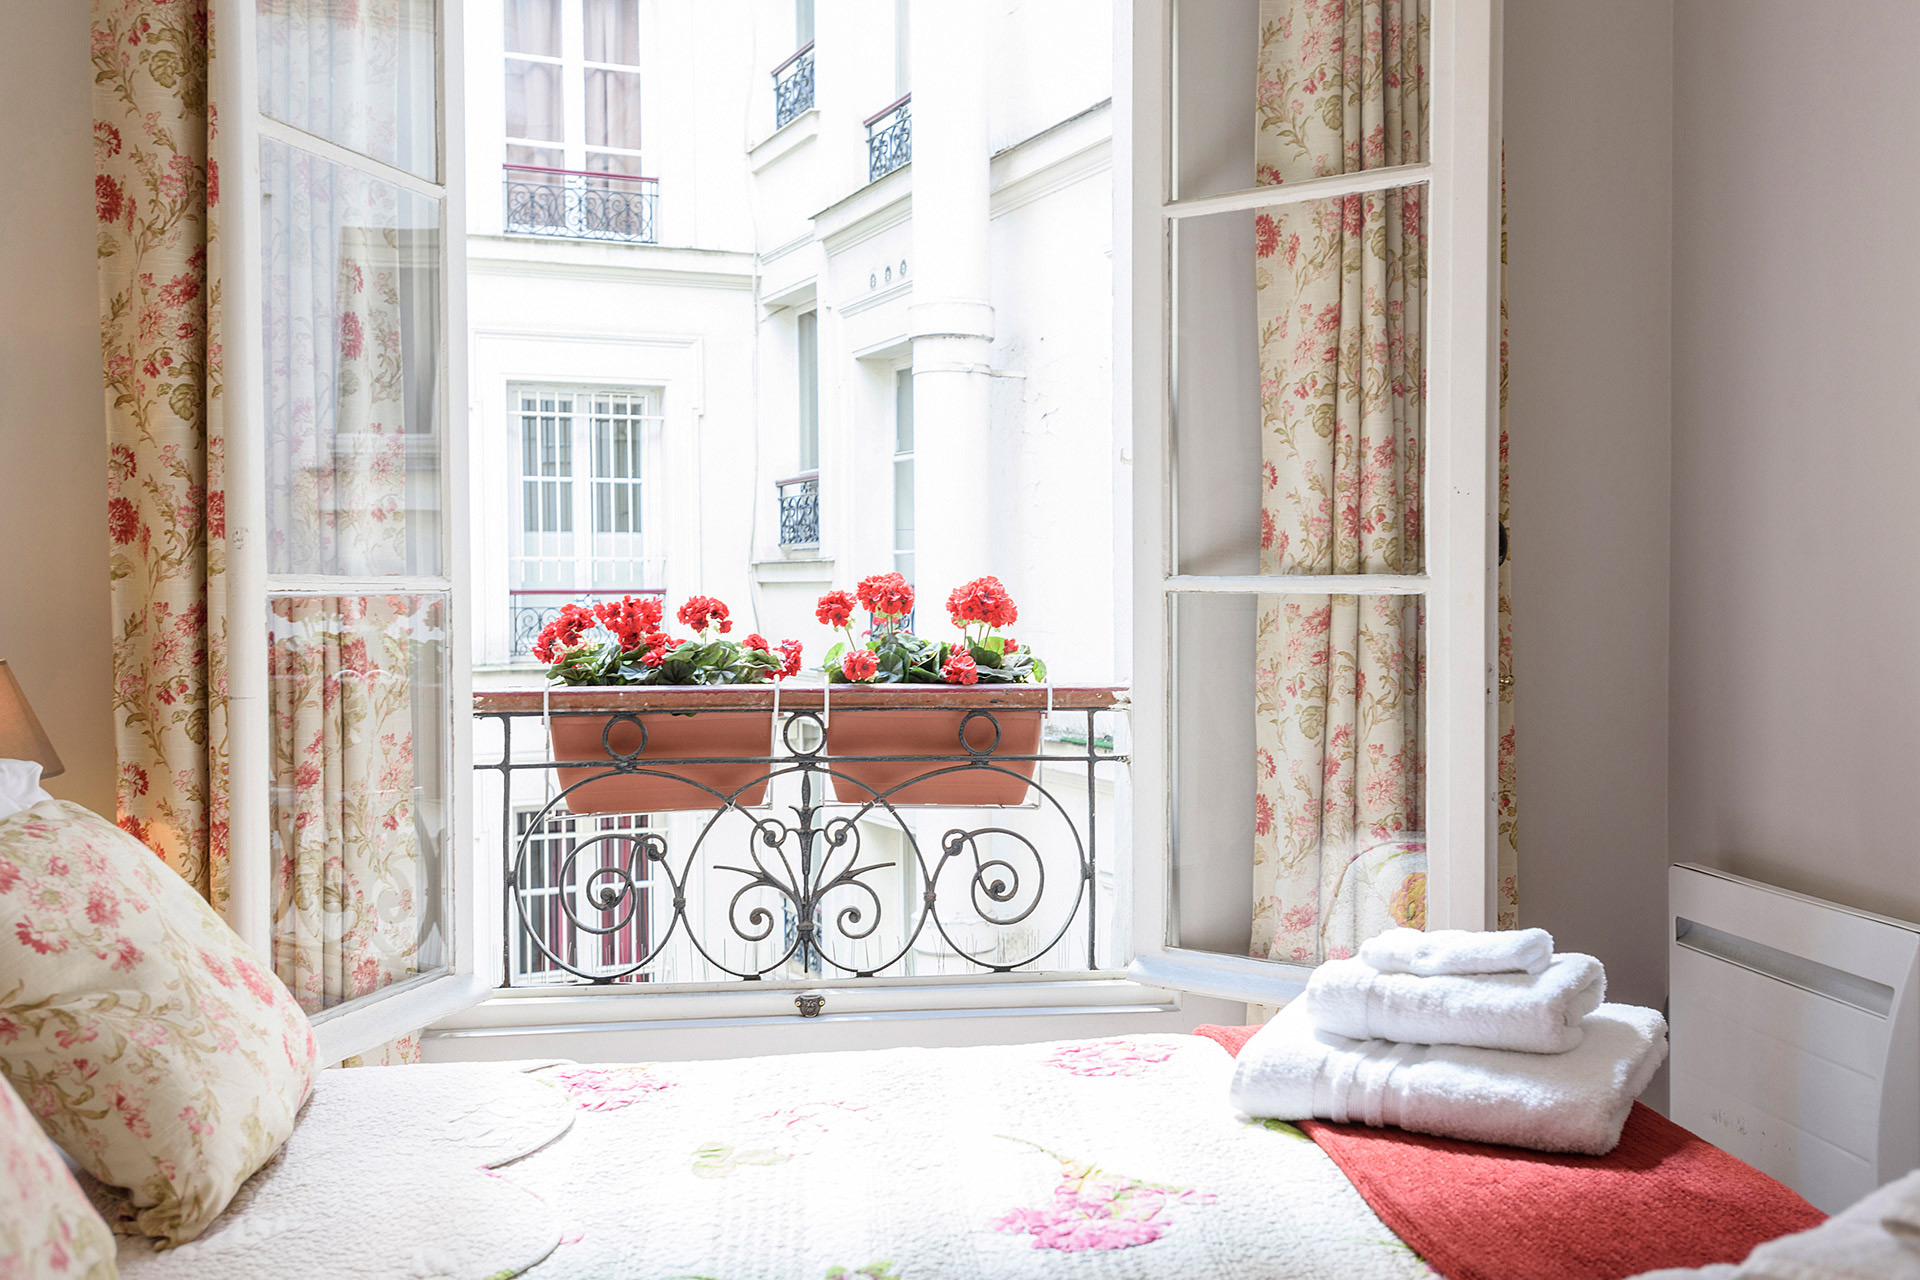 This quiet bedroom overlooks a courtyard in the Clairette vacation rental offered by Paris Perfect